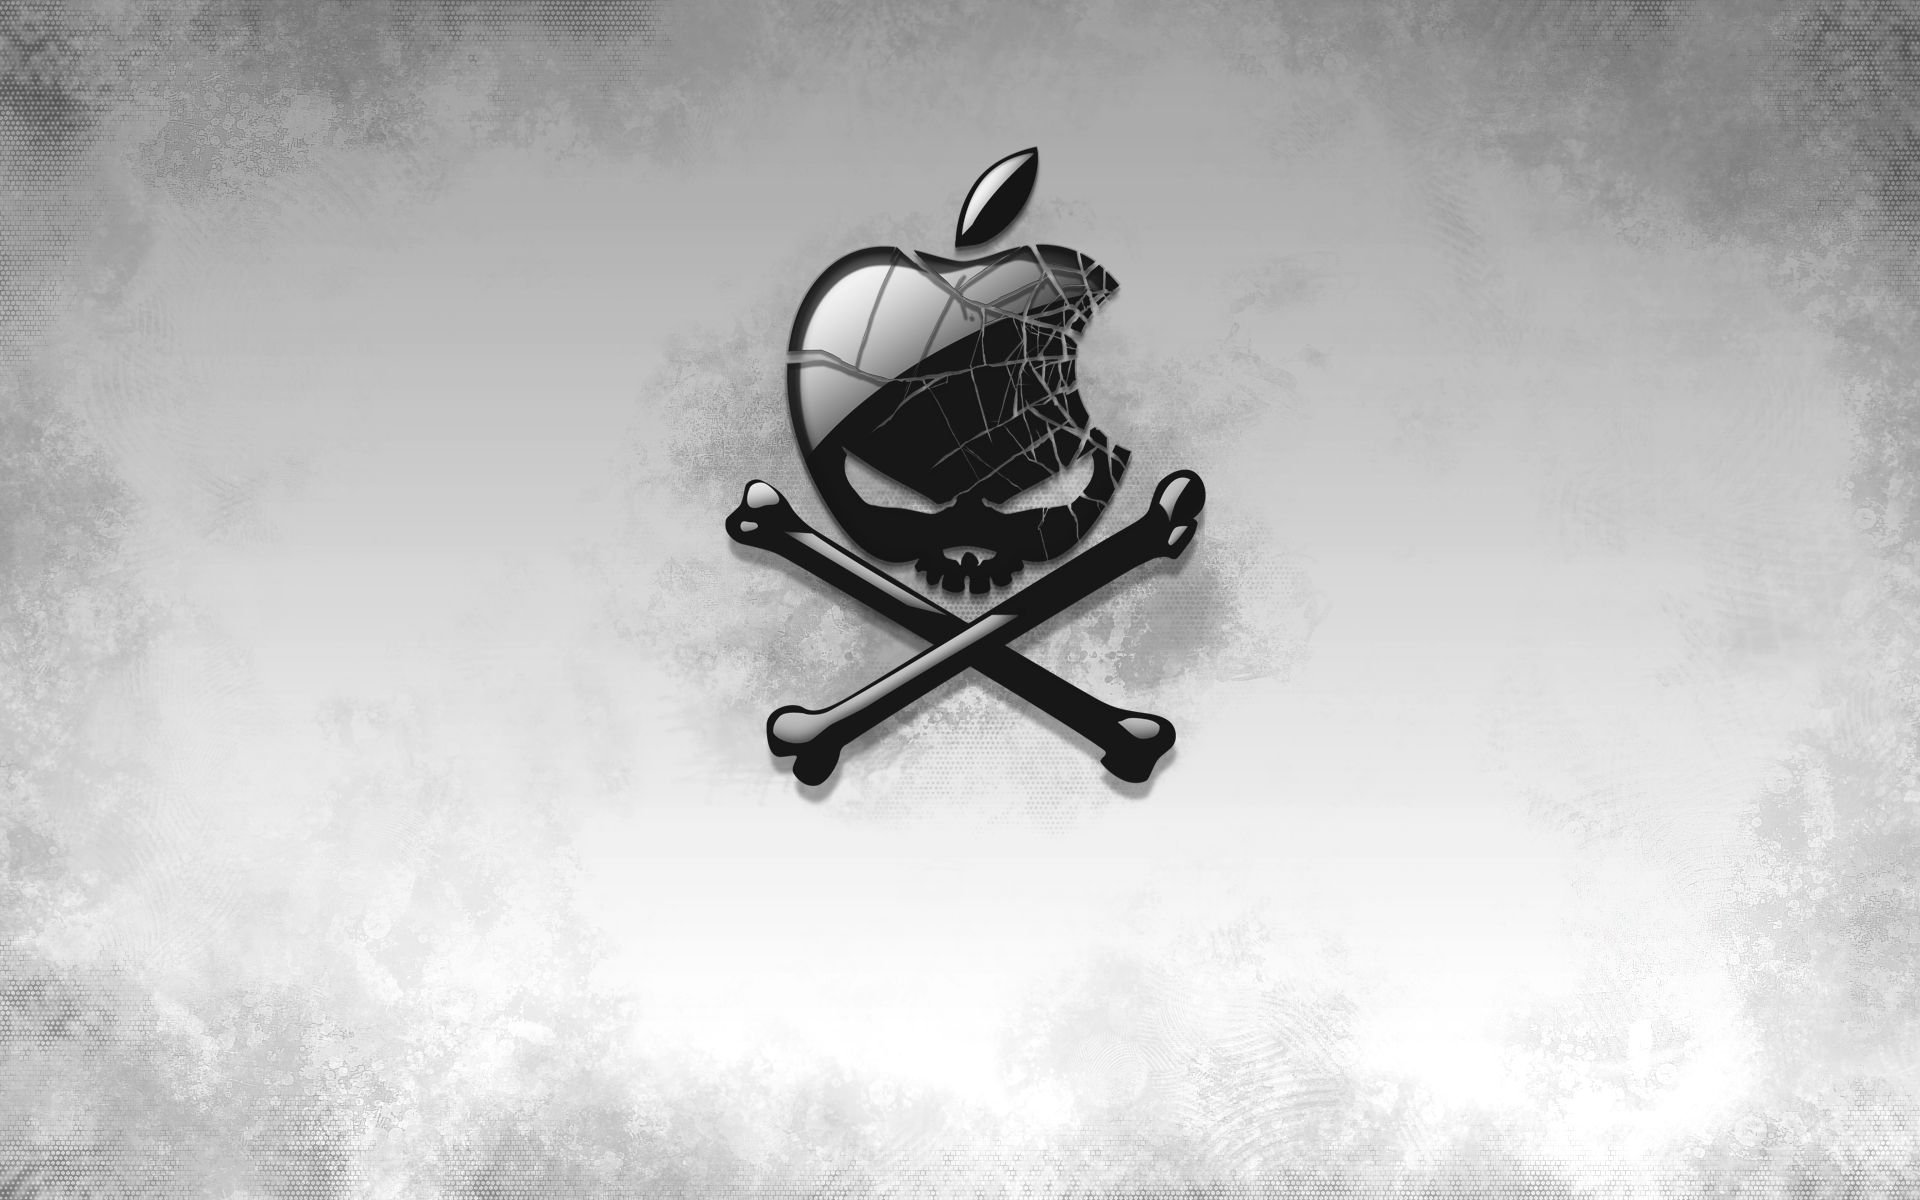 wallpapers 4k-hd Apple-alegorias.es (2)